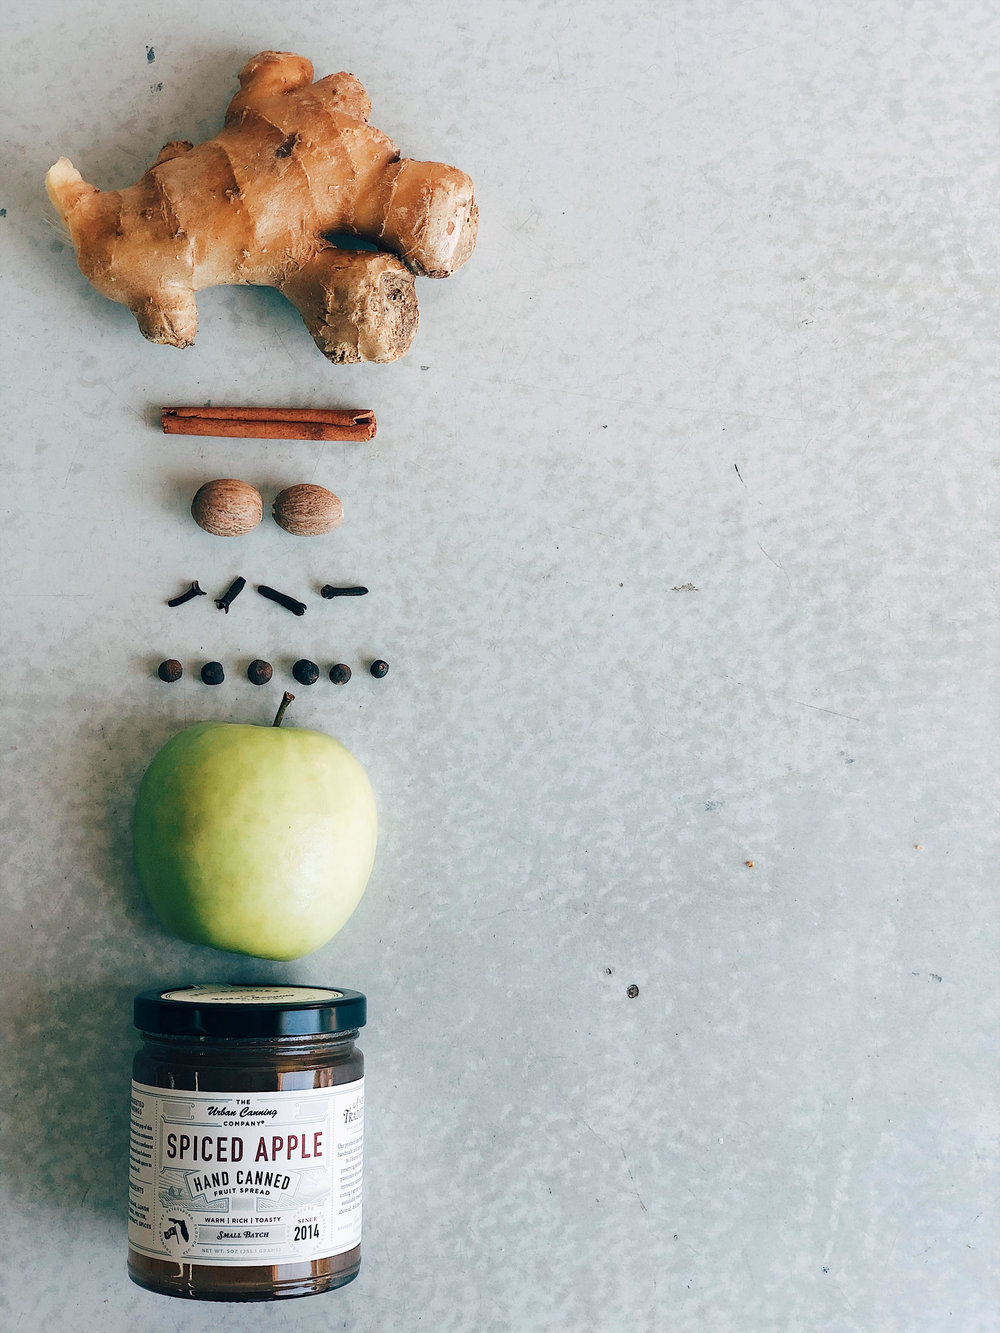 Spiced Apple Jam - • Ginger•Cinnamon• Nutmeg• Clove• Allspice• Granny Smith Apples (to balance out the sweetness)